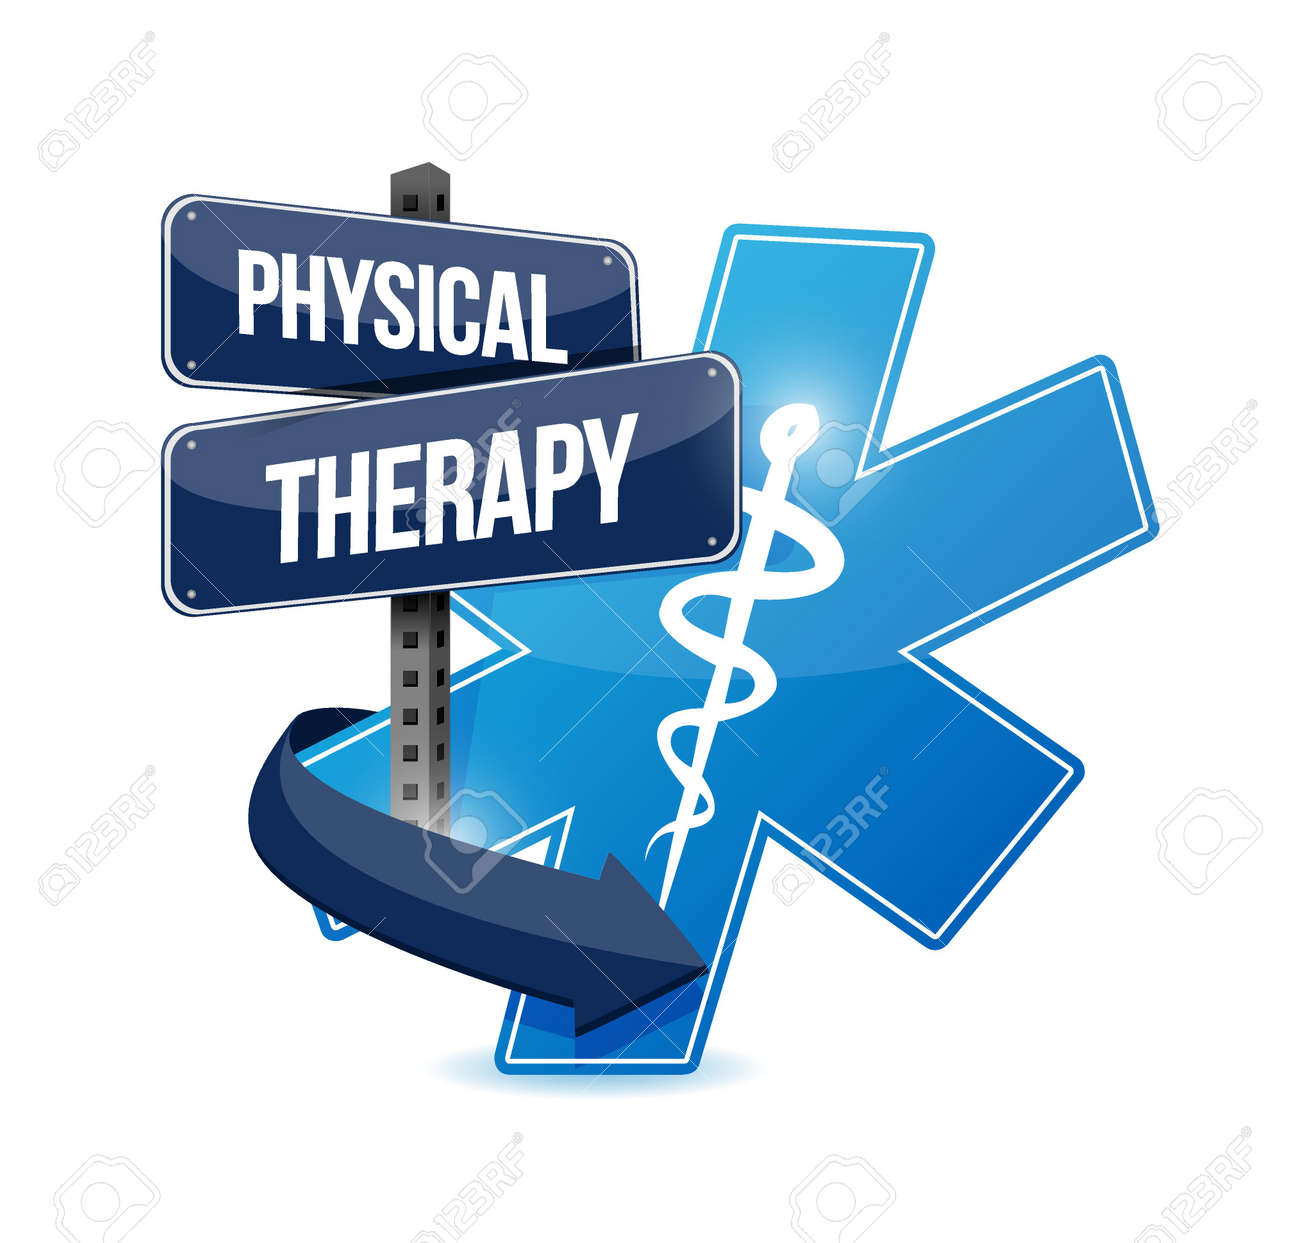 Cartoon physical therapy - Physical Therapy Medical Symbol Isolated Sign Illustration Design Graphic Stock Vector 61150954